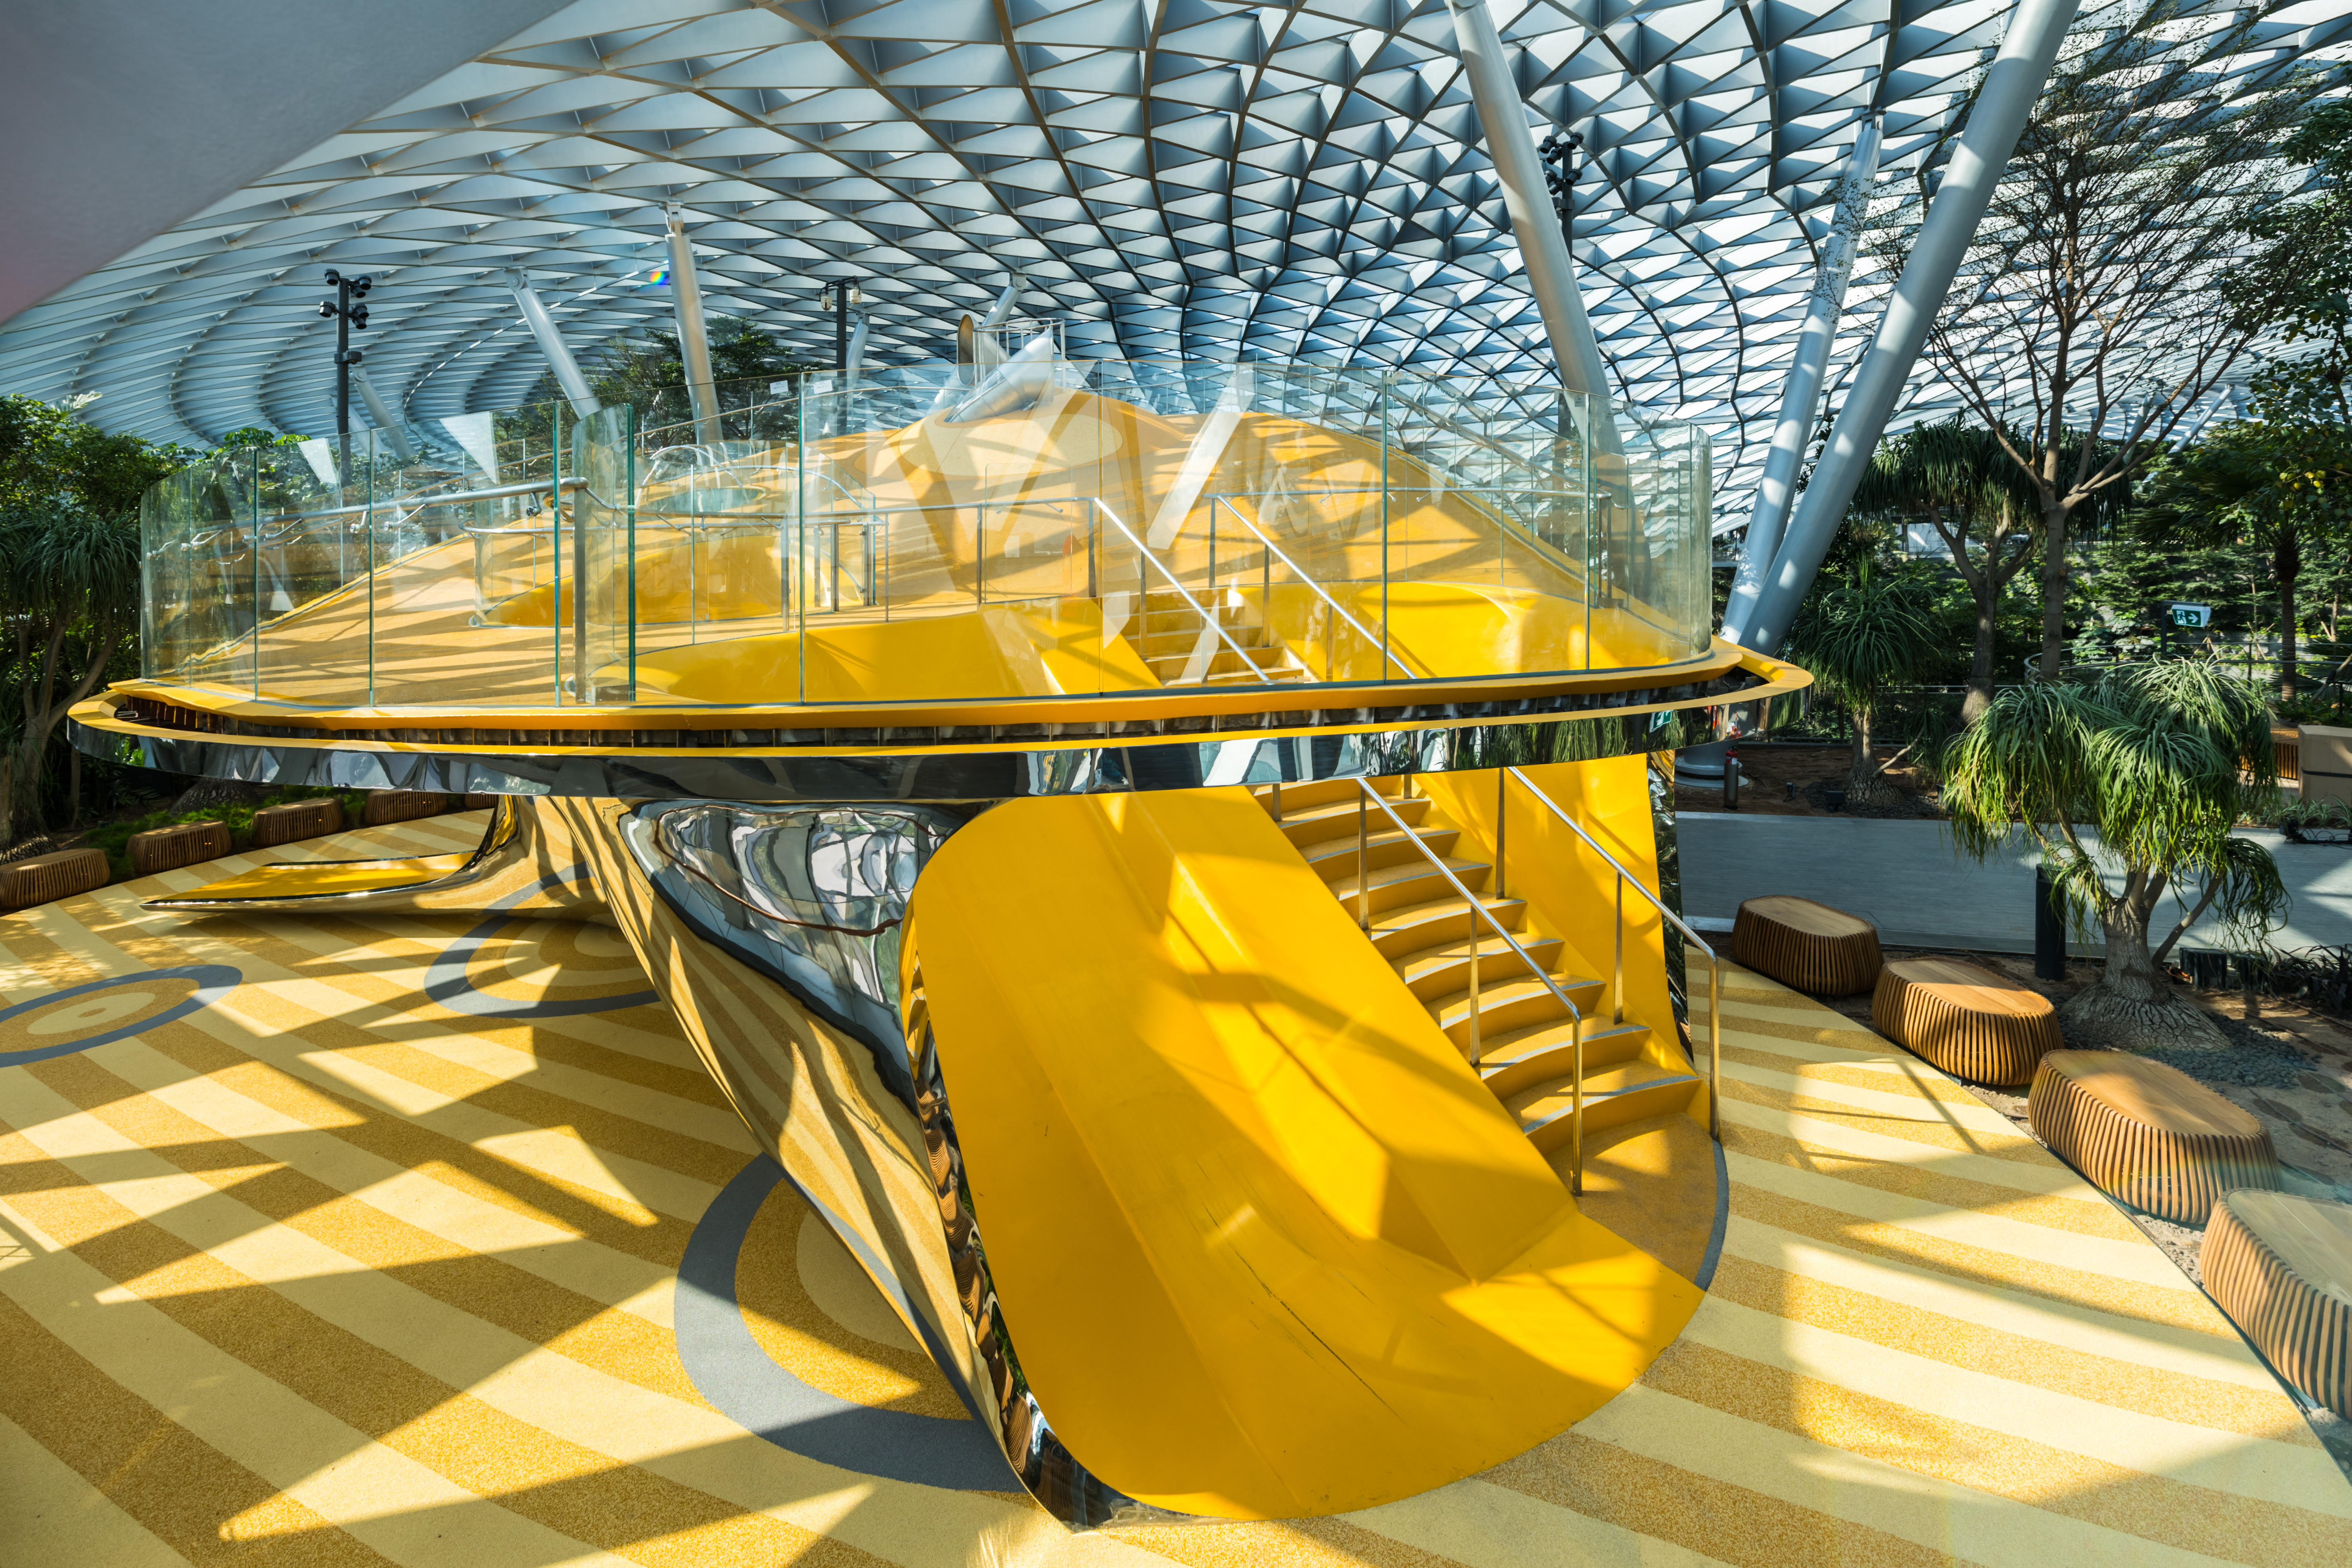 Discovery Slides Changi Int Airport - Beeld Playpoint Singapore